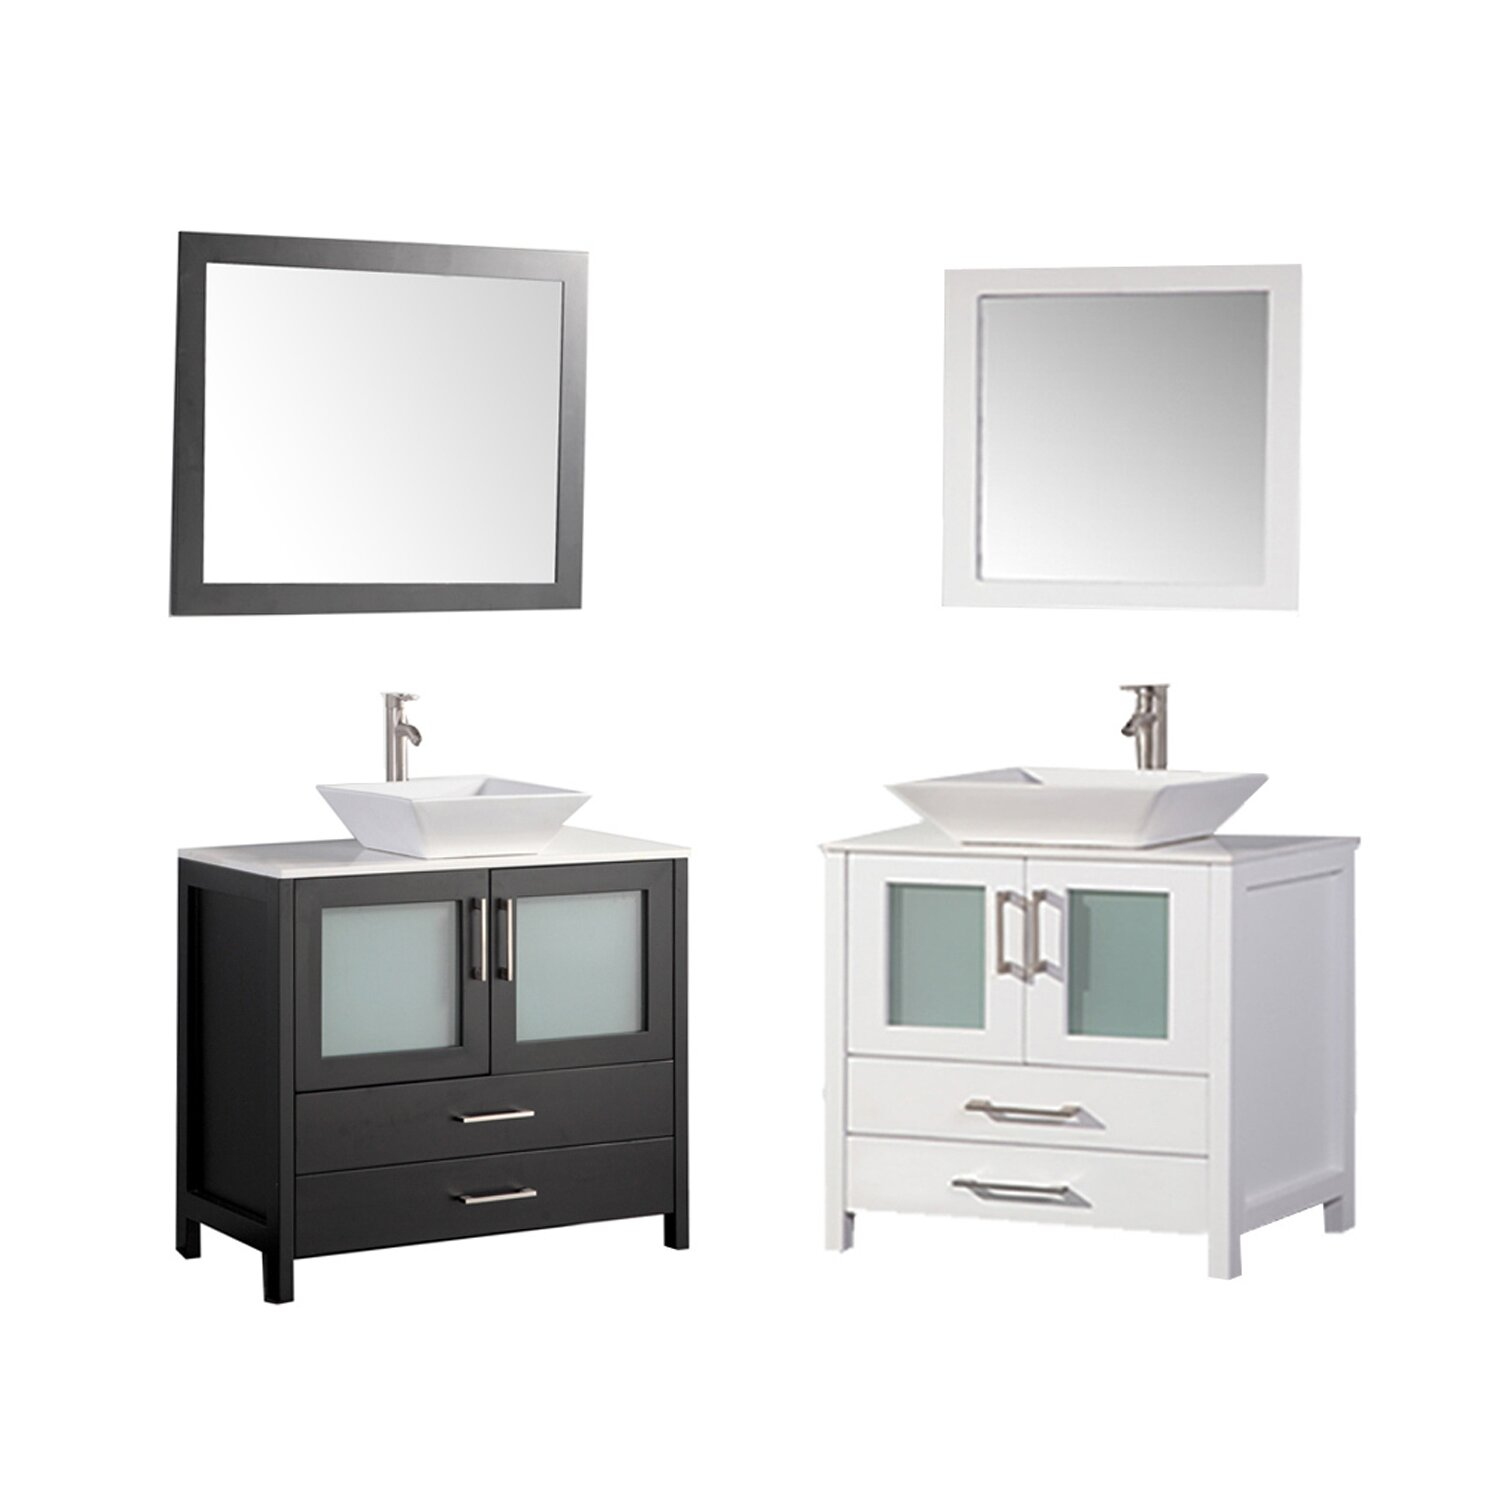 MTDVanities Jordan 36 Bathroom Vanity Set With Mirror Reviews W